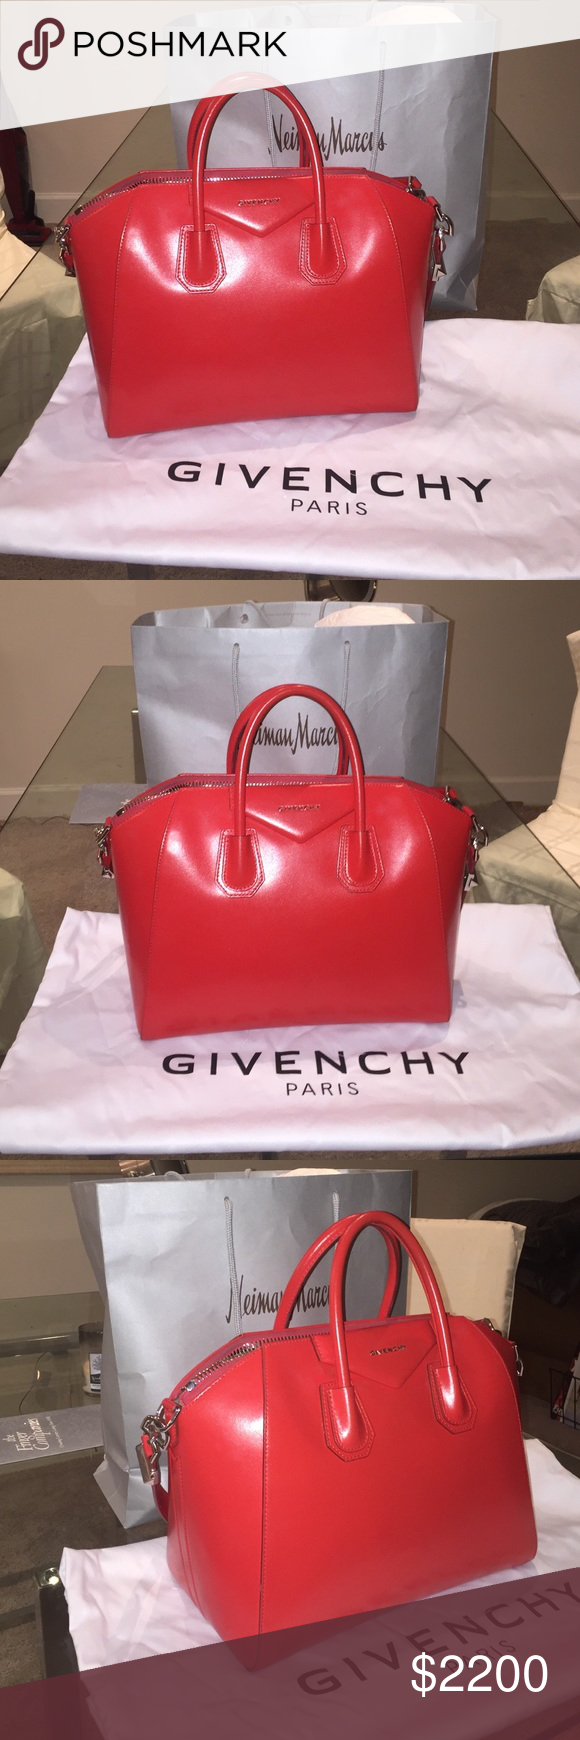 26e2828f20a1 Givenchy Antigona Slightly Used Large Givenchy Bag  Largest one in the Givenchy  Antigona family Normally priced at around 2900 Givenchy Bags Totes